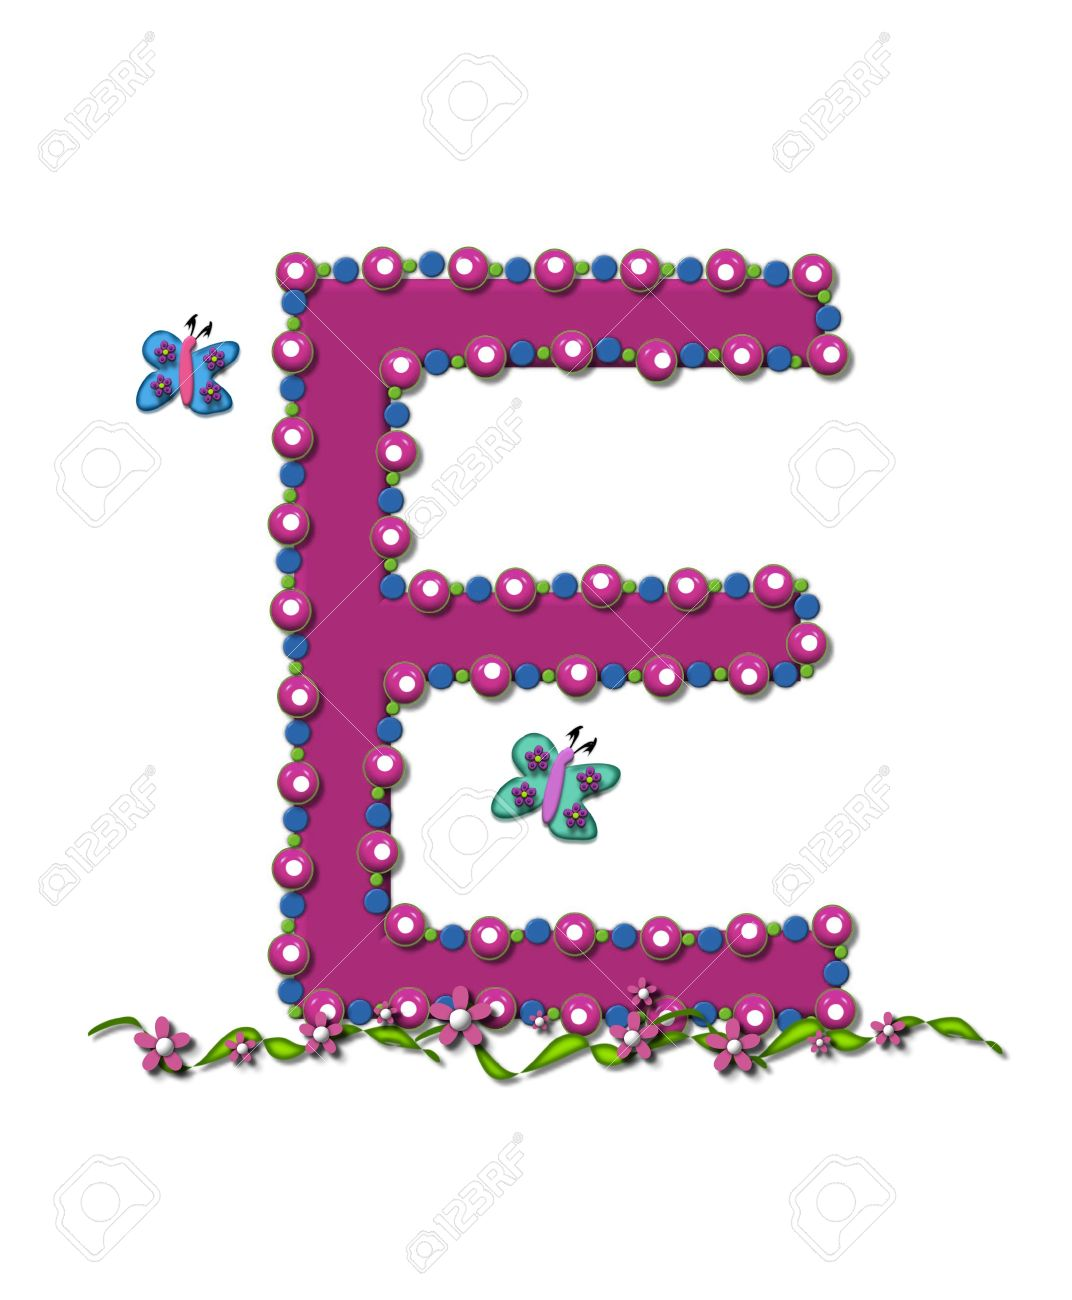 Letter E From Bead Alphabet Is Deep Rose In Color. Letter Is.. Stock ...